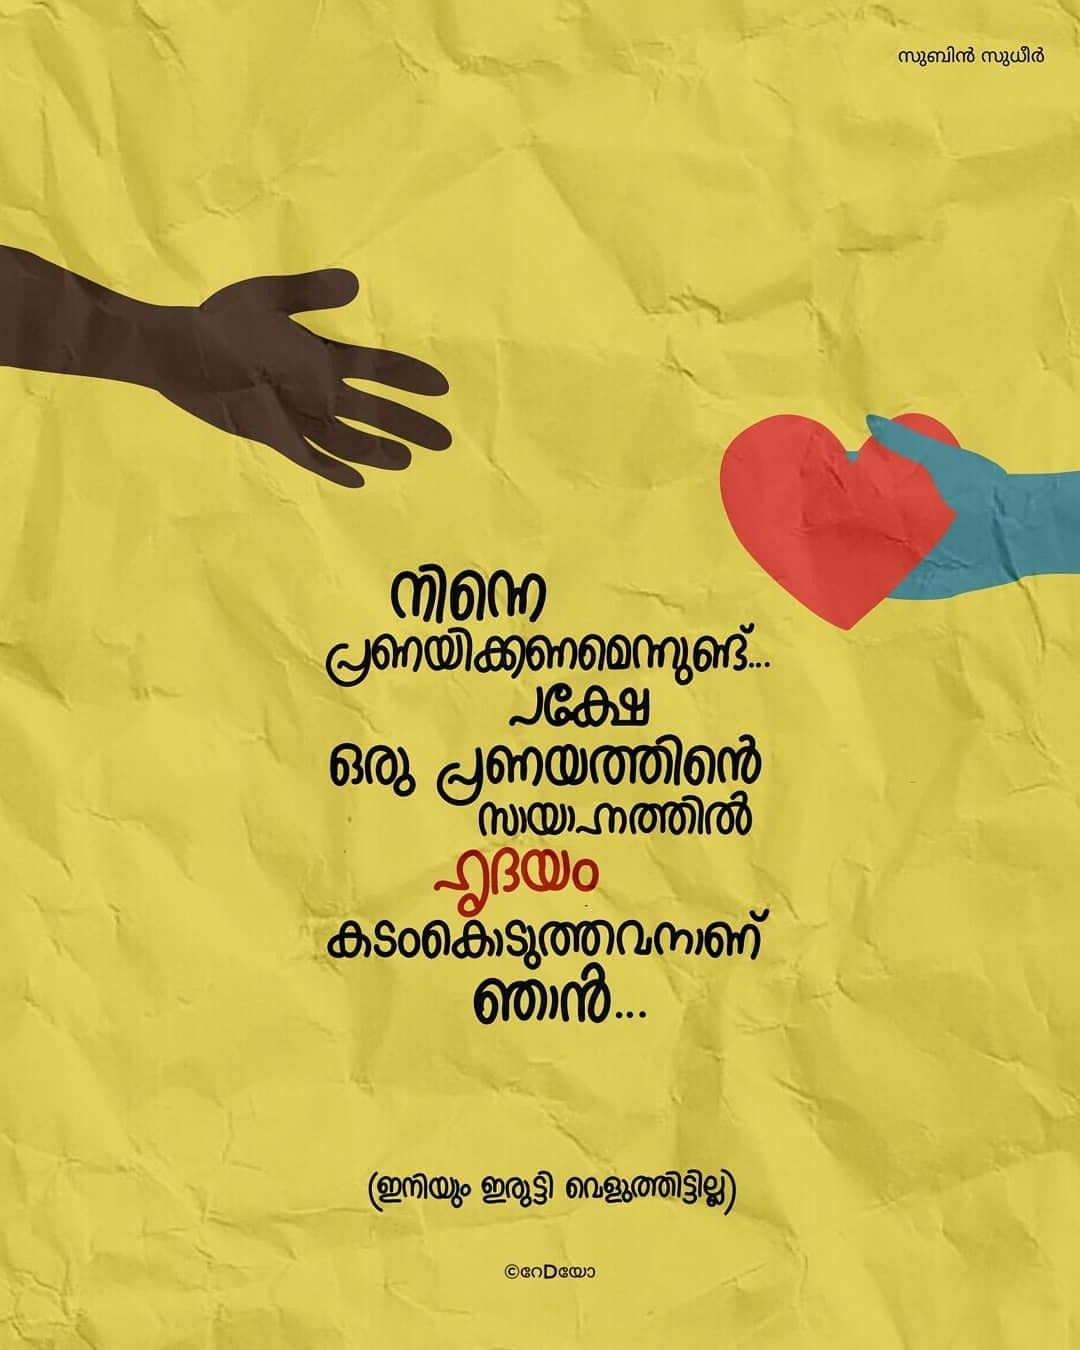 Love Messages In Malayalam With Pictures: Pin By Rosanna On Malayalam